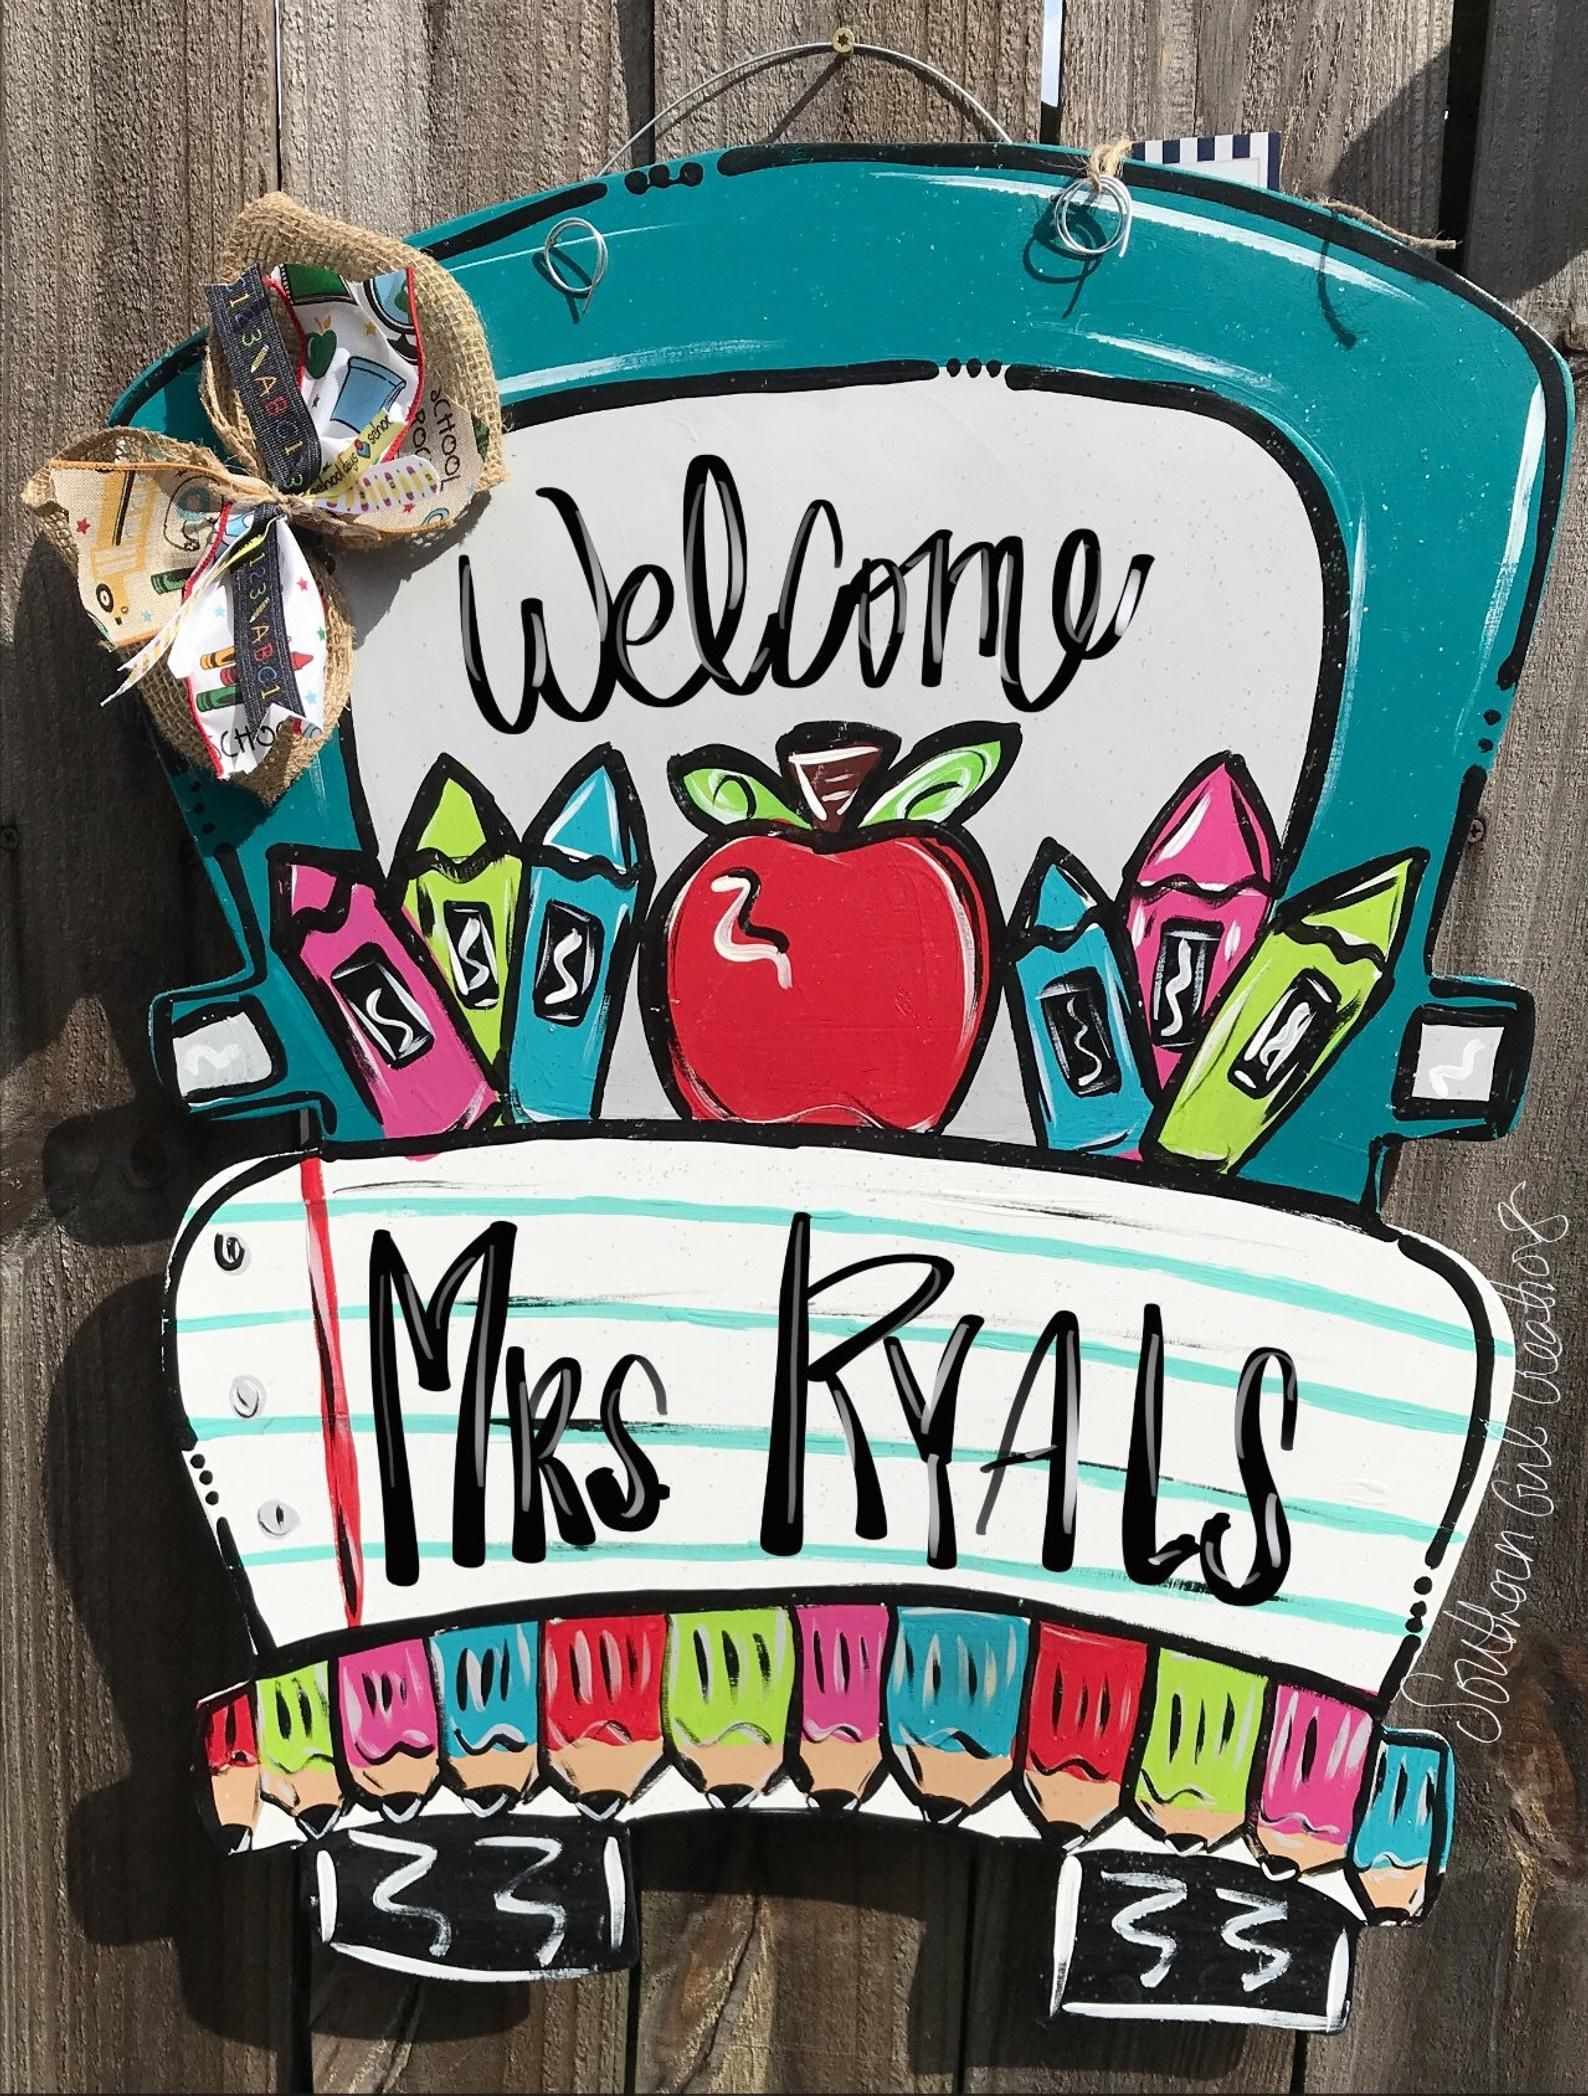 Back to school truck classroom teacher door hanger - truck door hanger - classroom soor hanger - classroom decor - back to school door decor